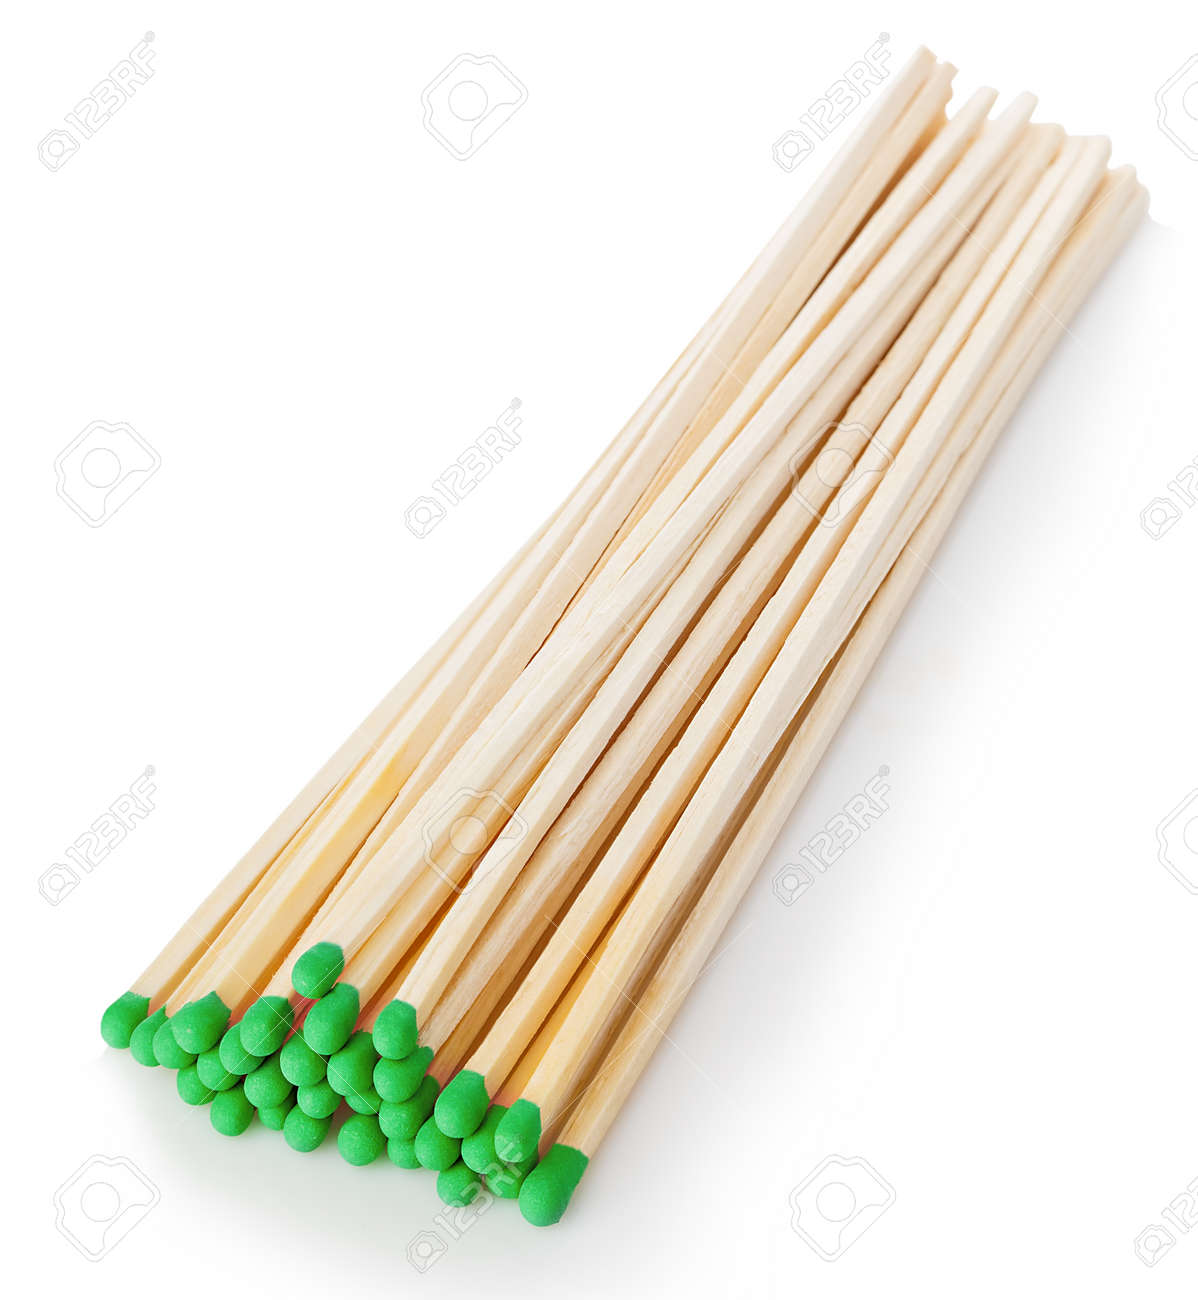 Matches close-up isolated on a white background. - 126197604